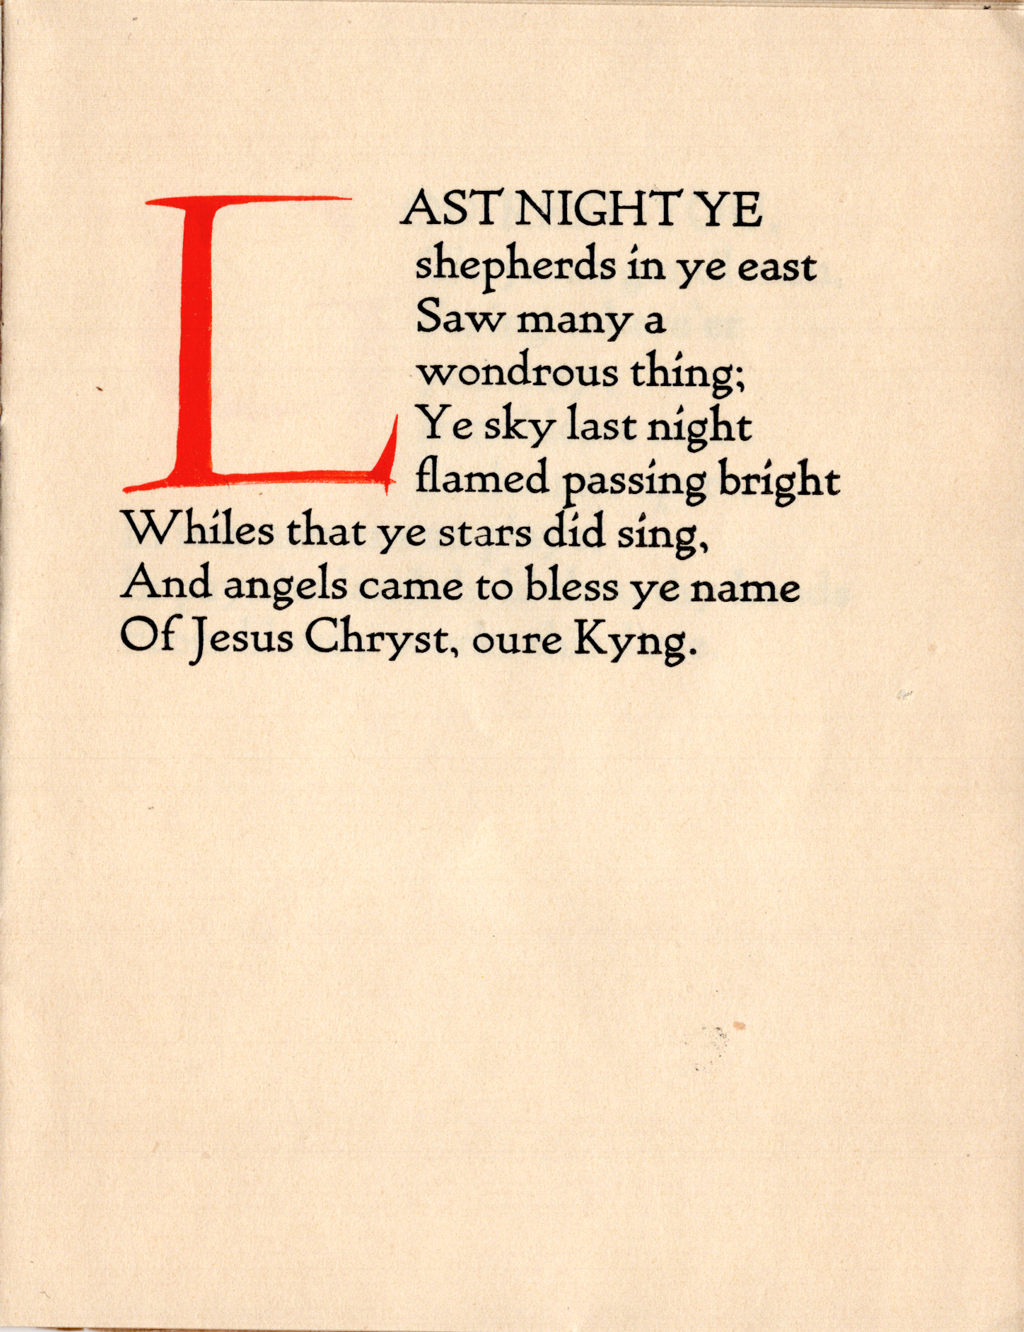 Page from Chrystmasse of Olde by Eugene Field. Typography and decoration by W.A. Dwiggins. Printed at the Village Press, December 1904. Boston Public Library, 1974 Dwiggins Collection, Box 37, Folder 20.